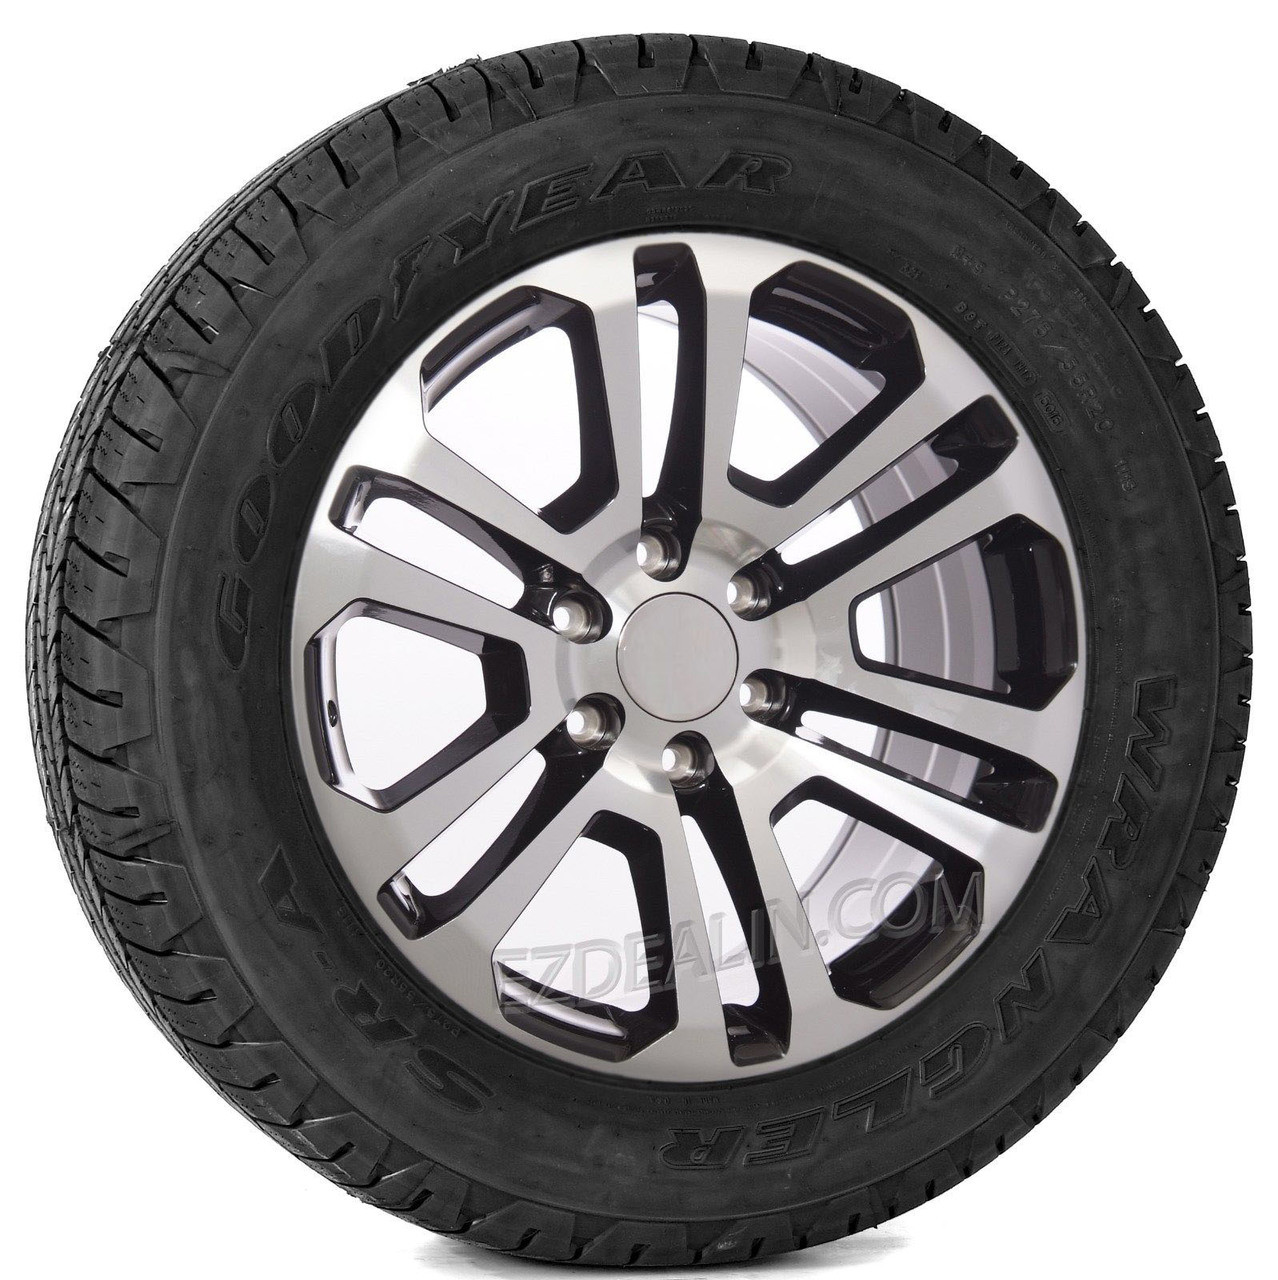 "Black and Machine 20"" Split Spoke Wheels with Goodyear Tires for Chevy Silverado, Tahoe, Suburban - New Set of 4"